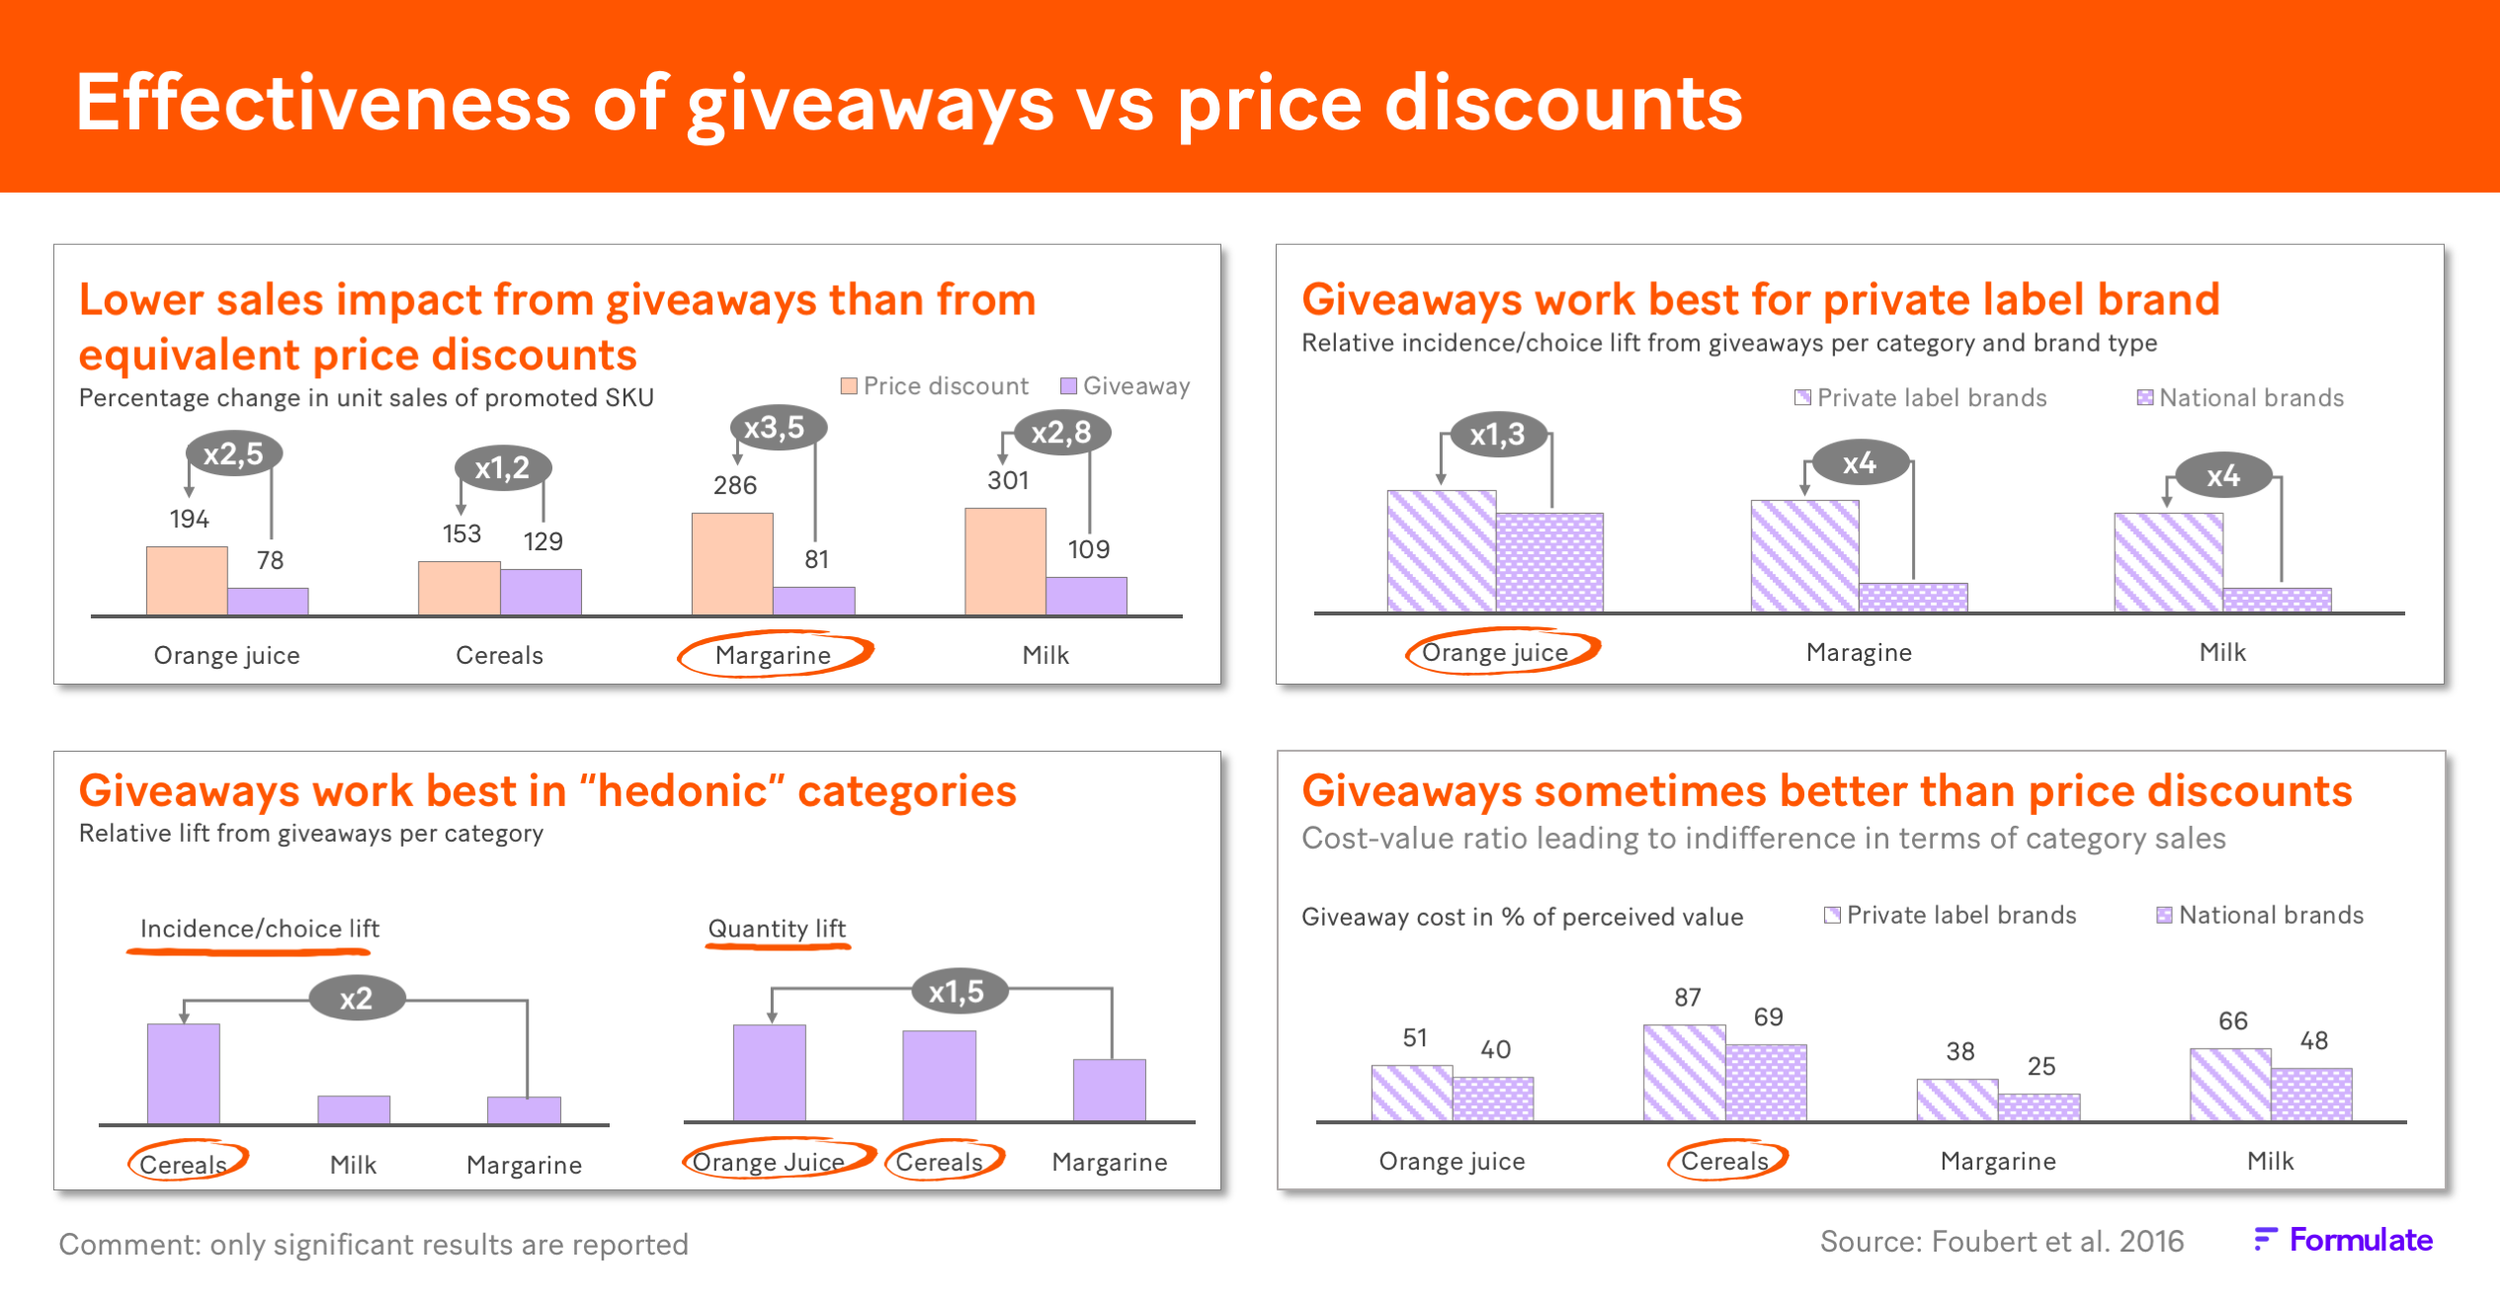 Giveaways vs price discounts - eng.png